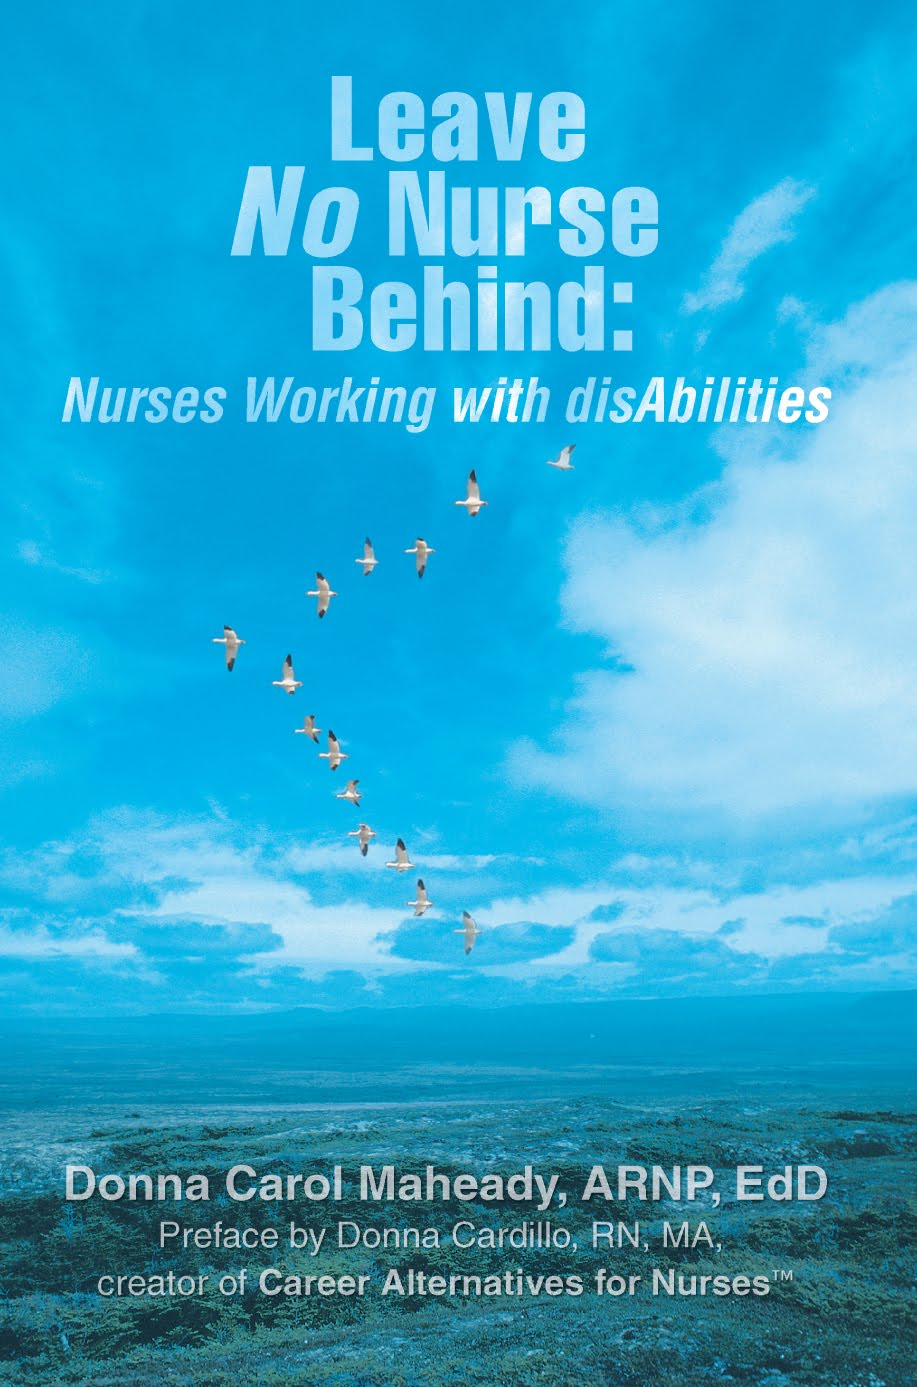 Leave No Nurse Behind: Nurses working with disAbilities